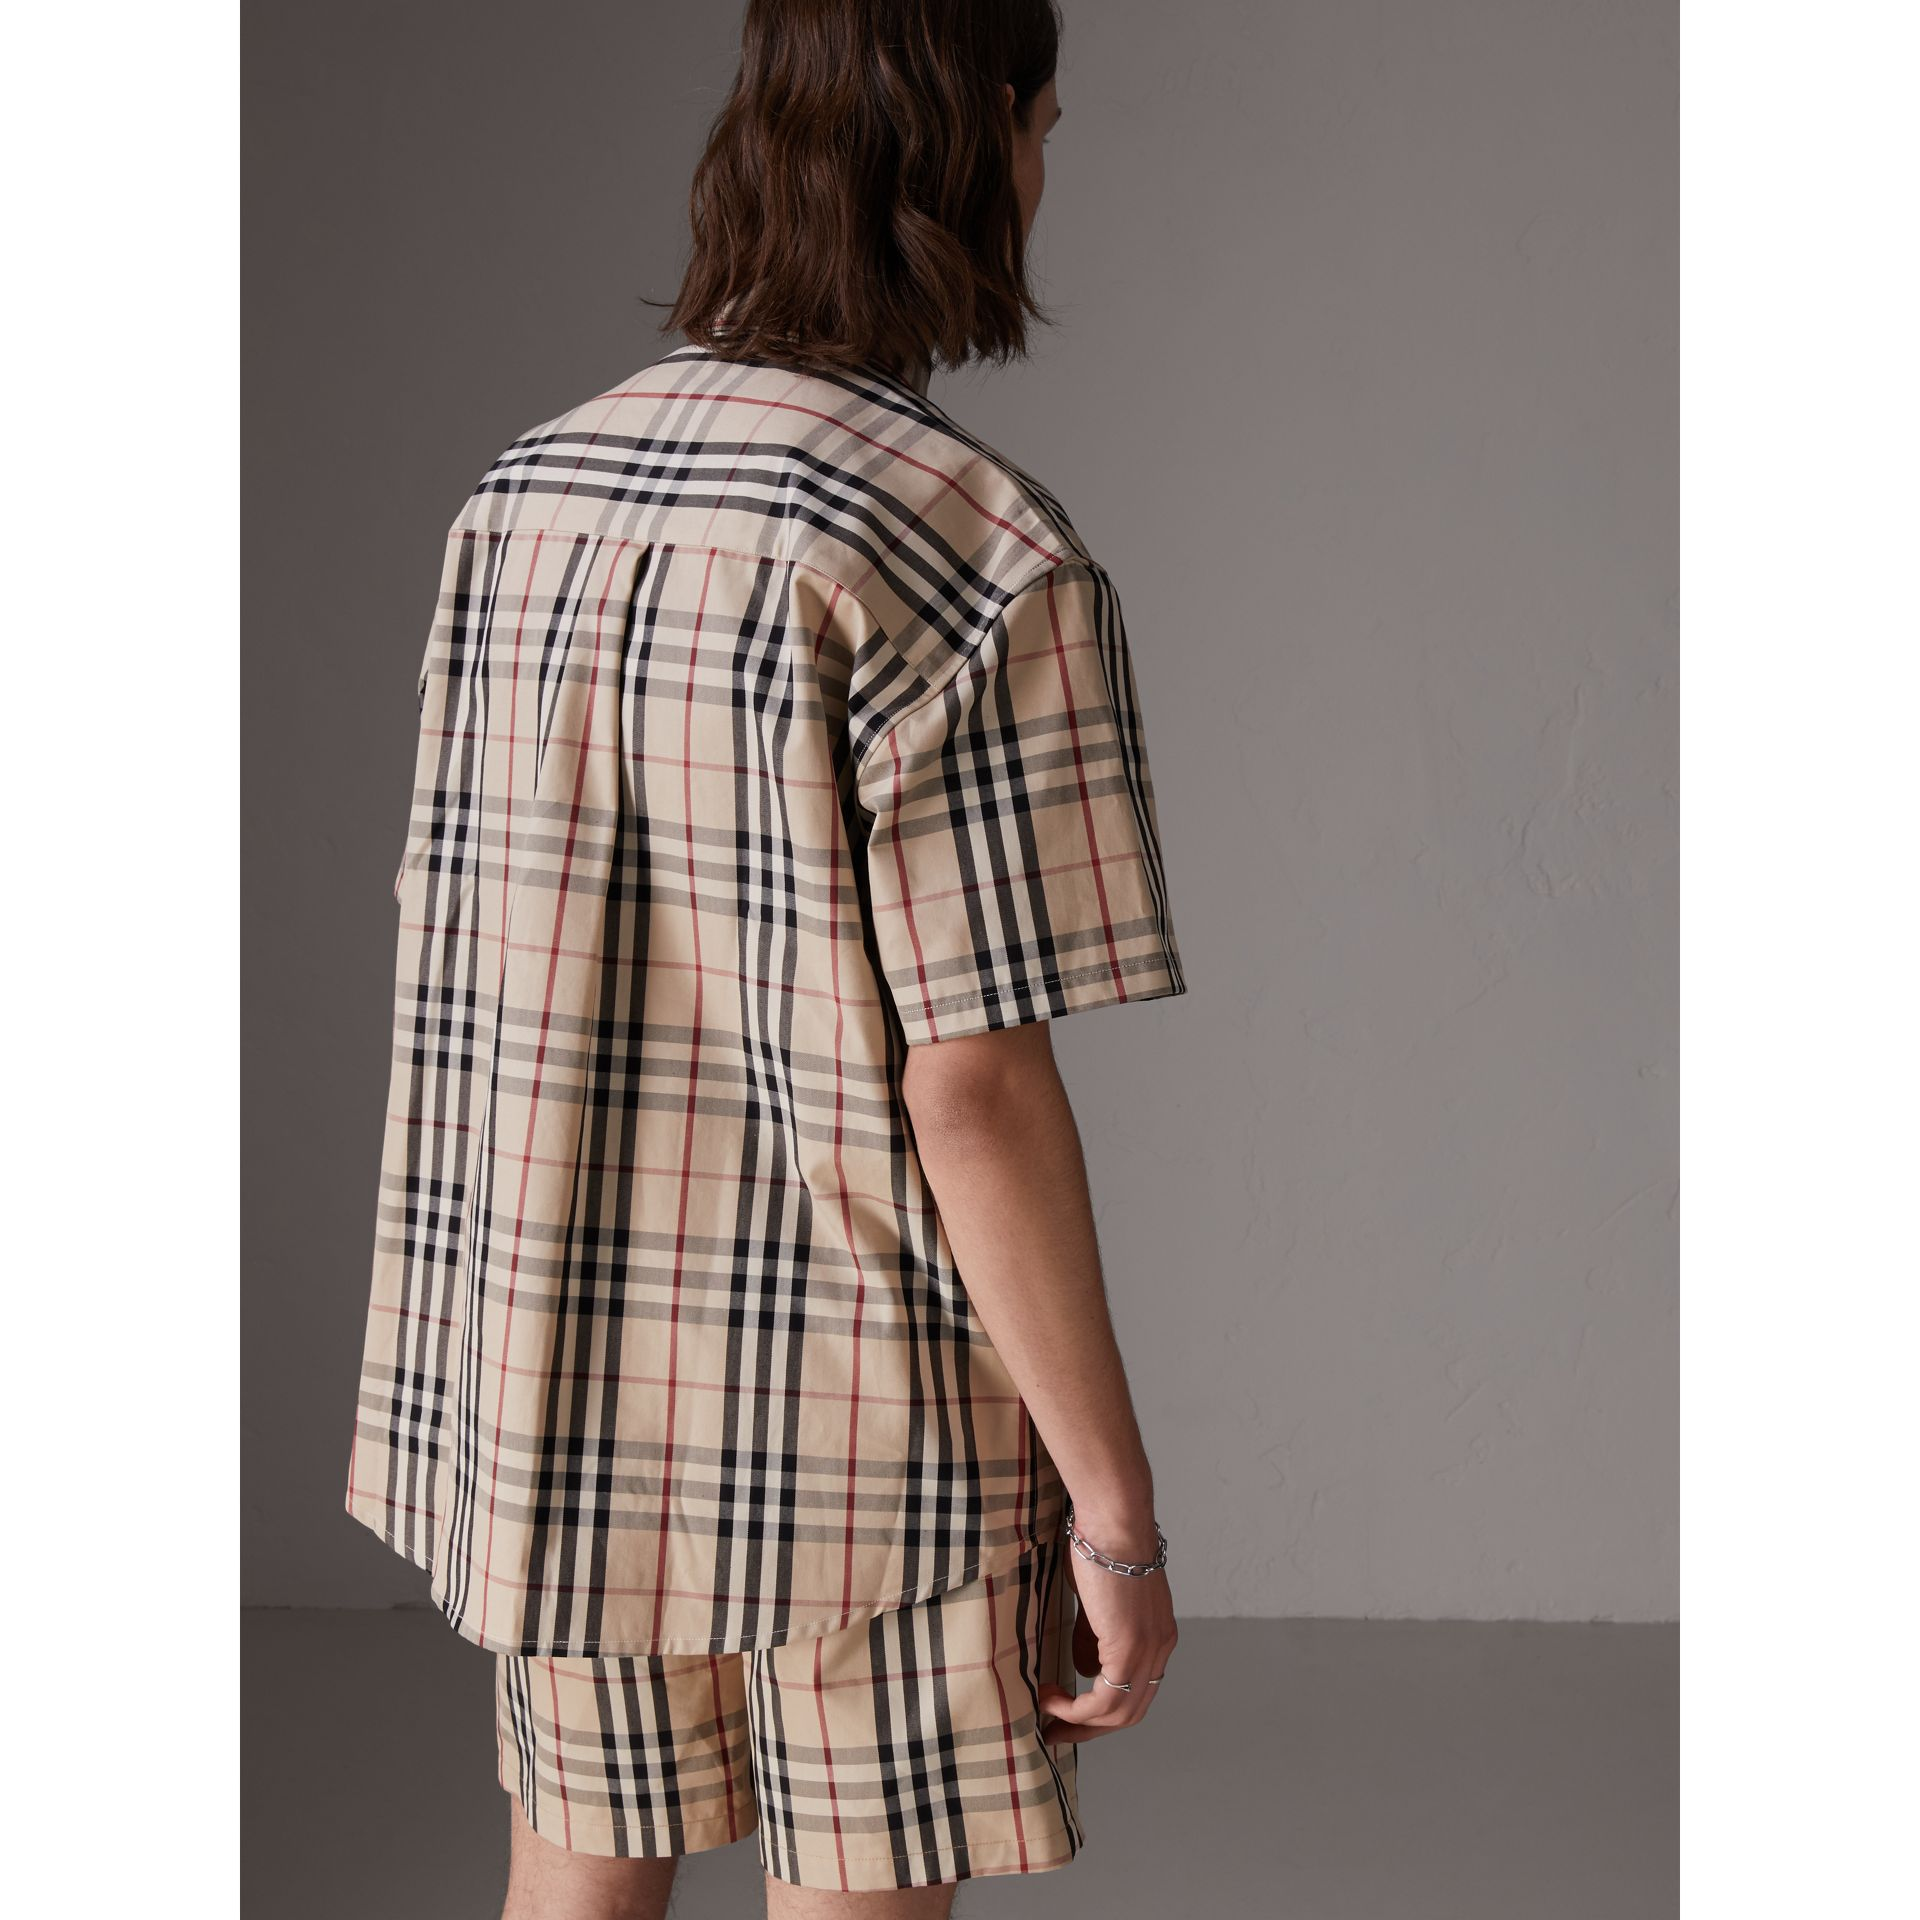 Gosha x Burberry Short-sleeve Check Shirt in Honey | Burberry Hong Kong - gallery image 5